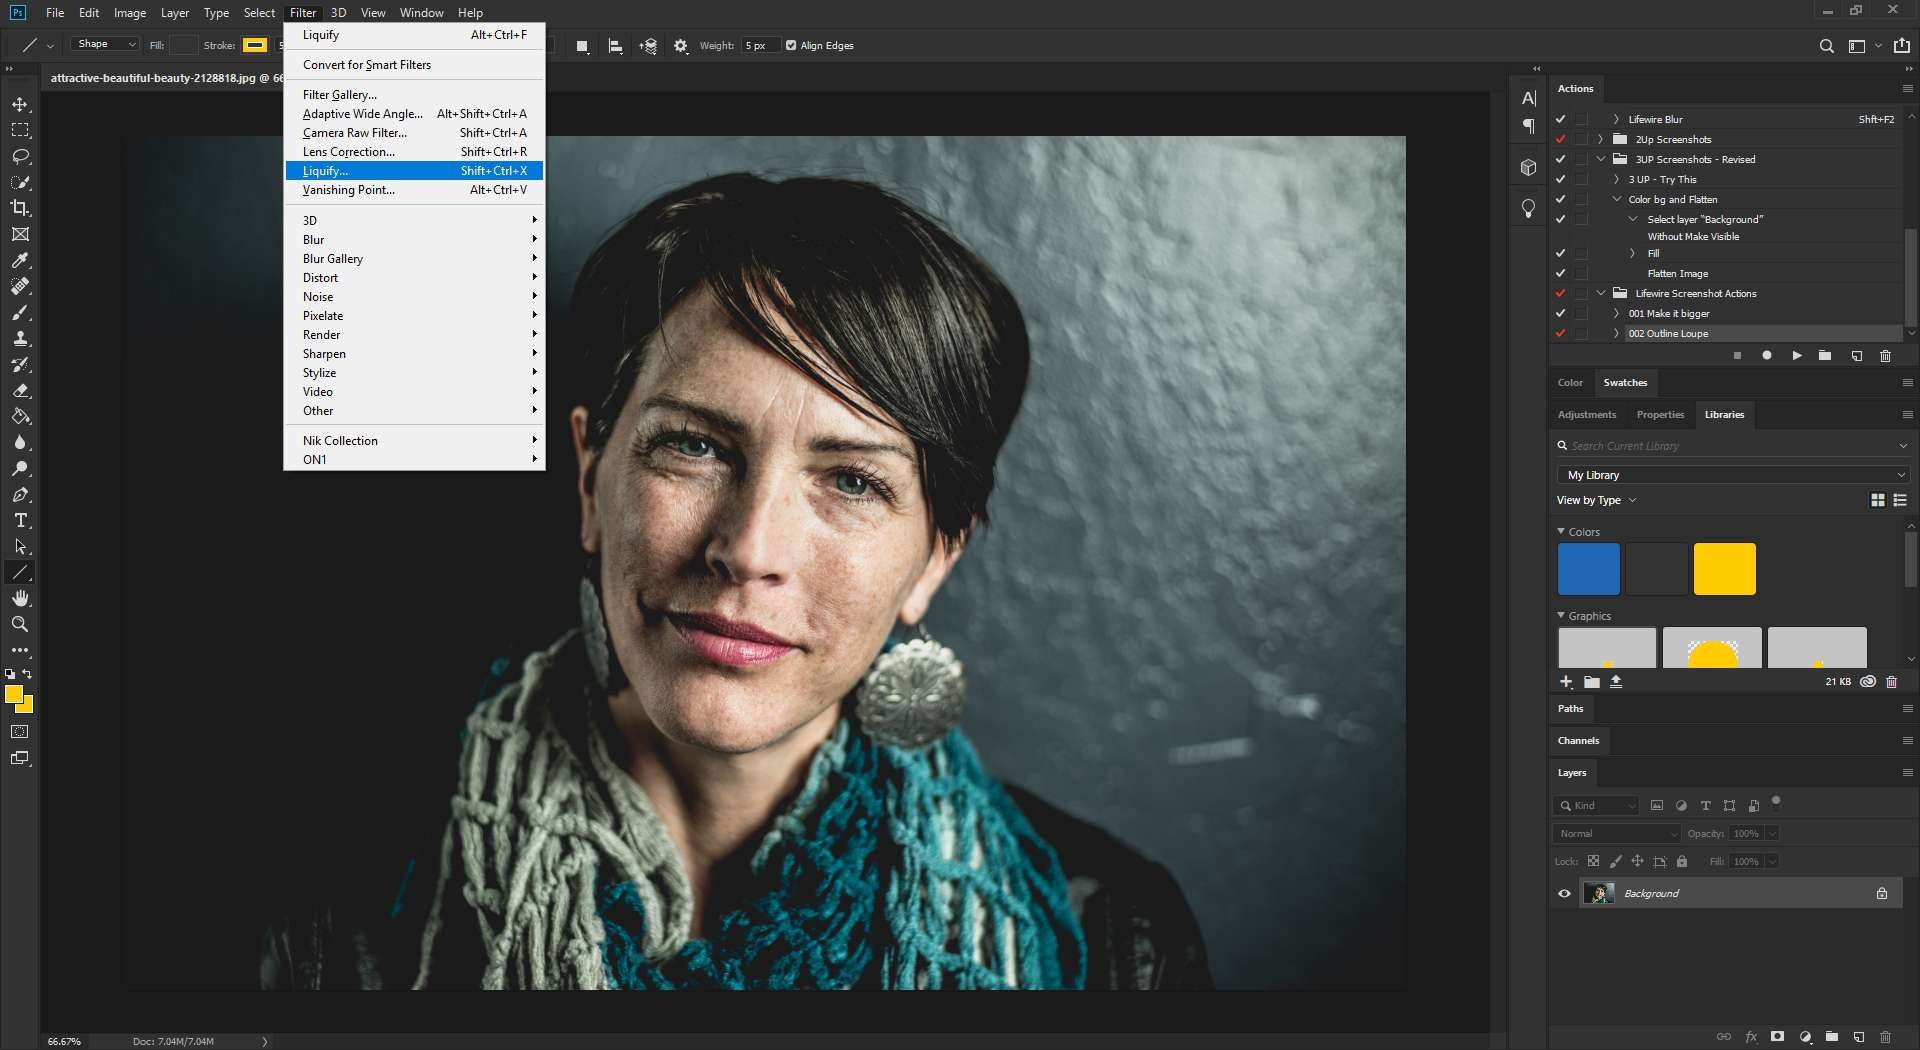 Activating Liquify filter in Photoshop.